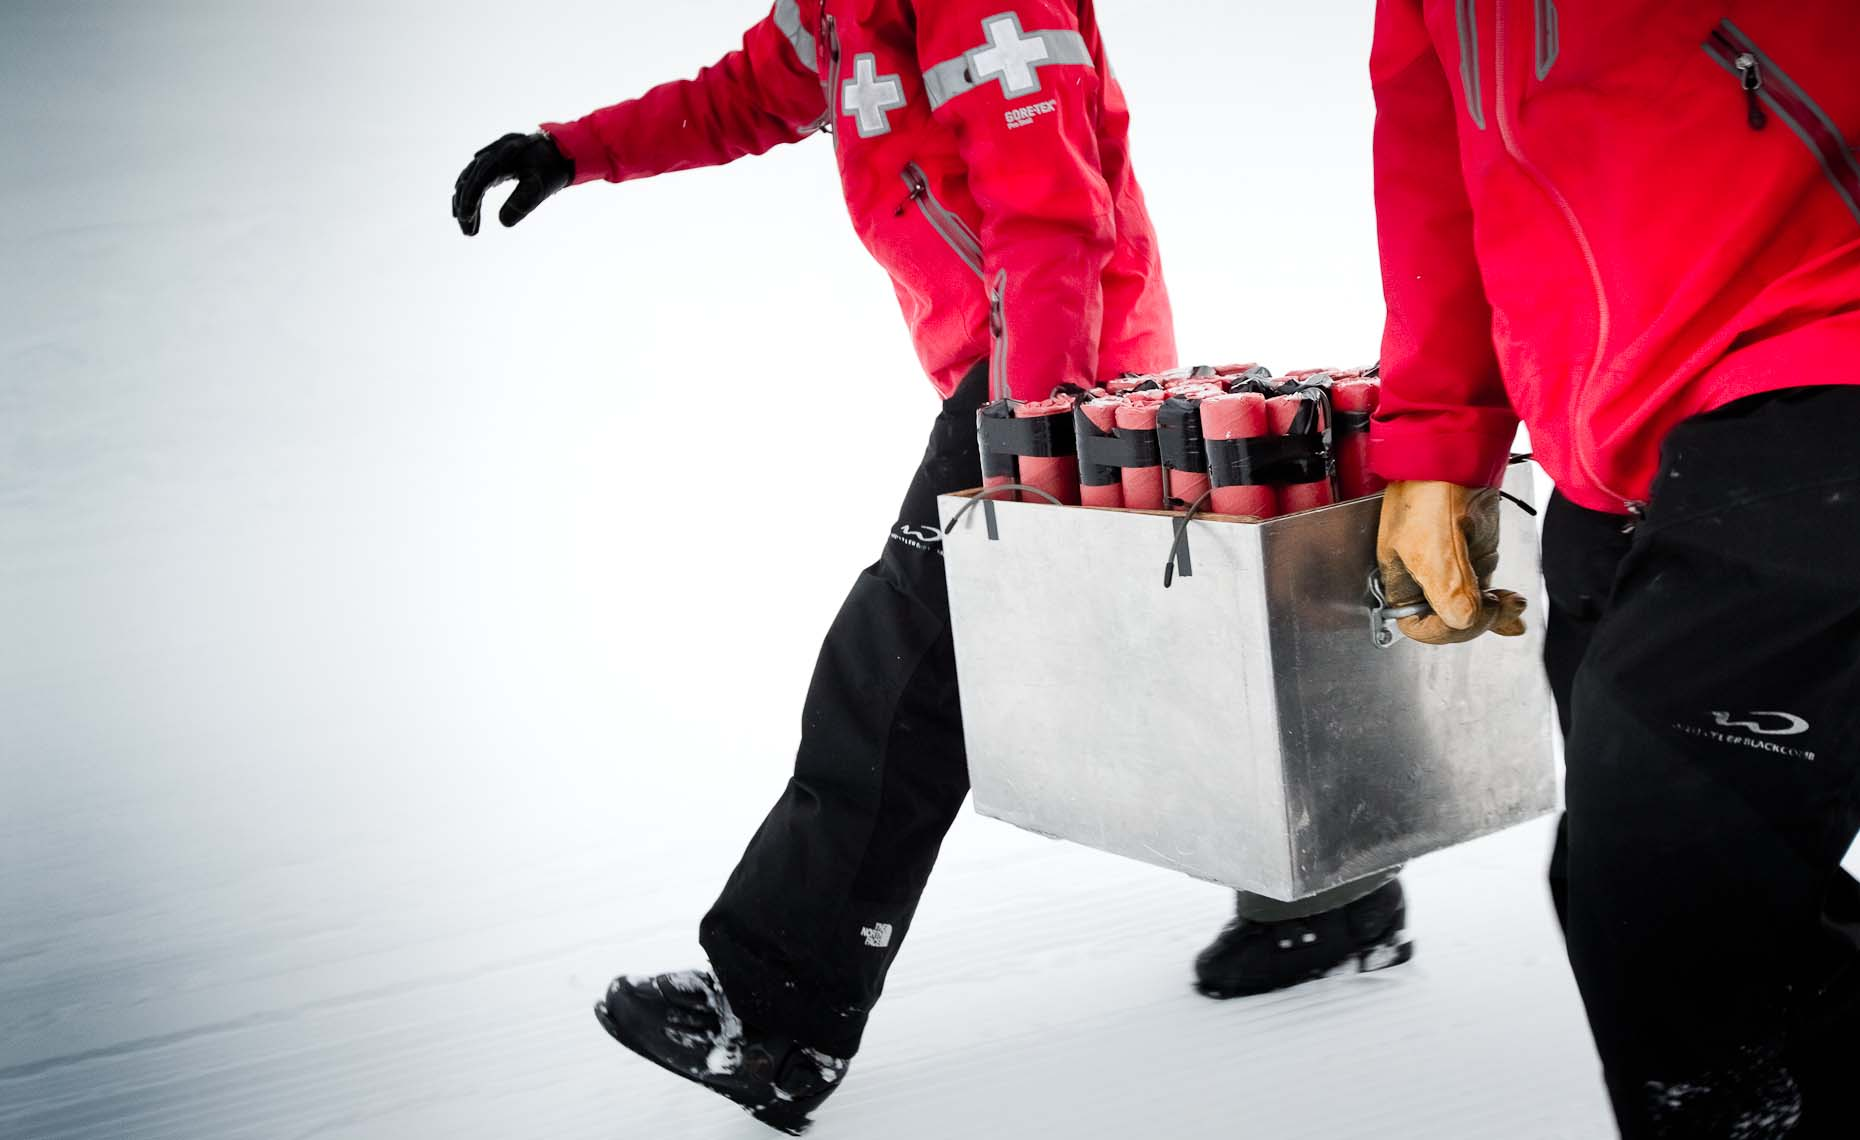 Whistler mountain ski patrol carrying dynamite during a documentary photography project.